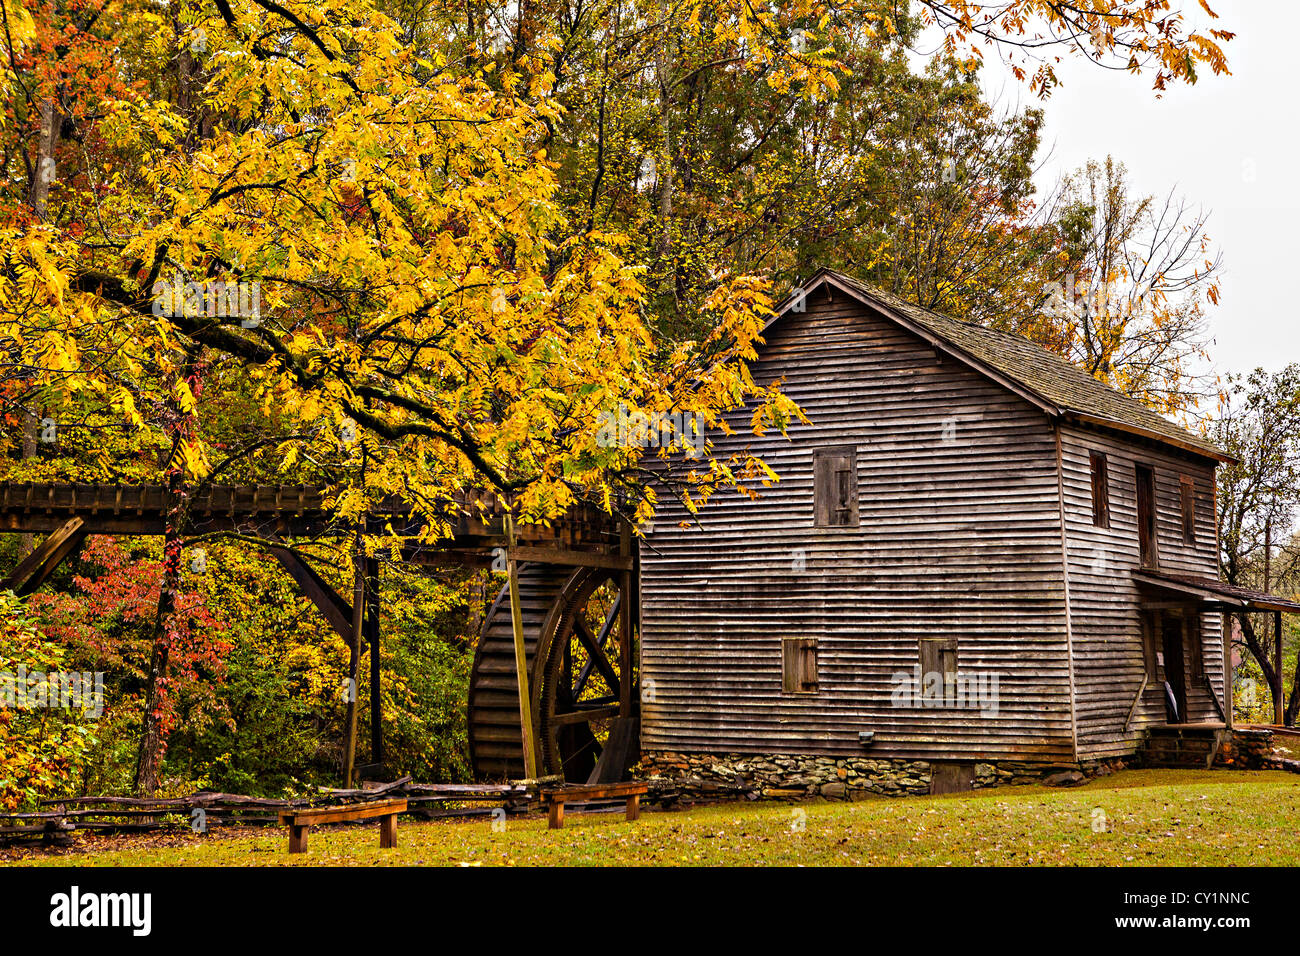 Gristmill Stock Photos & Gristmill Stock Images - Alamy